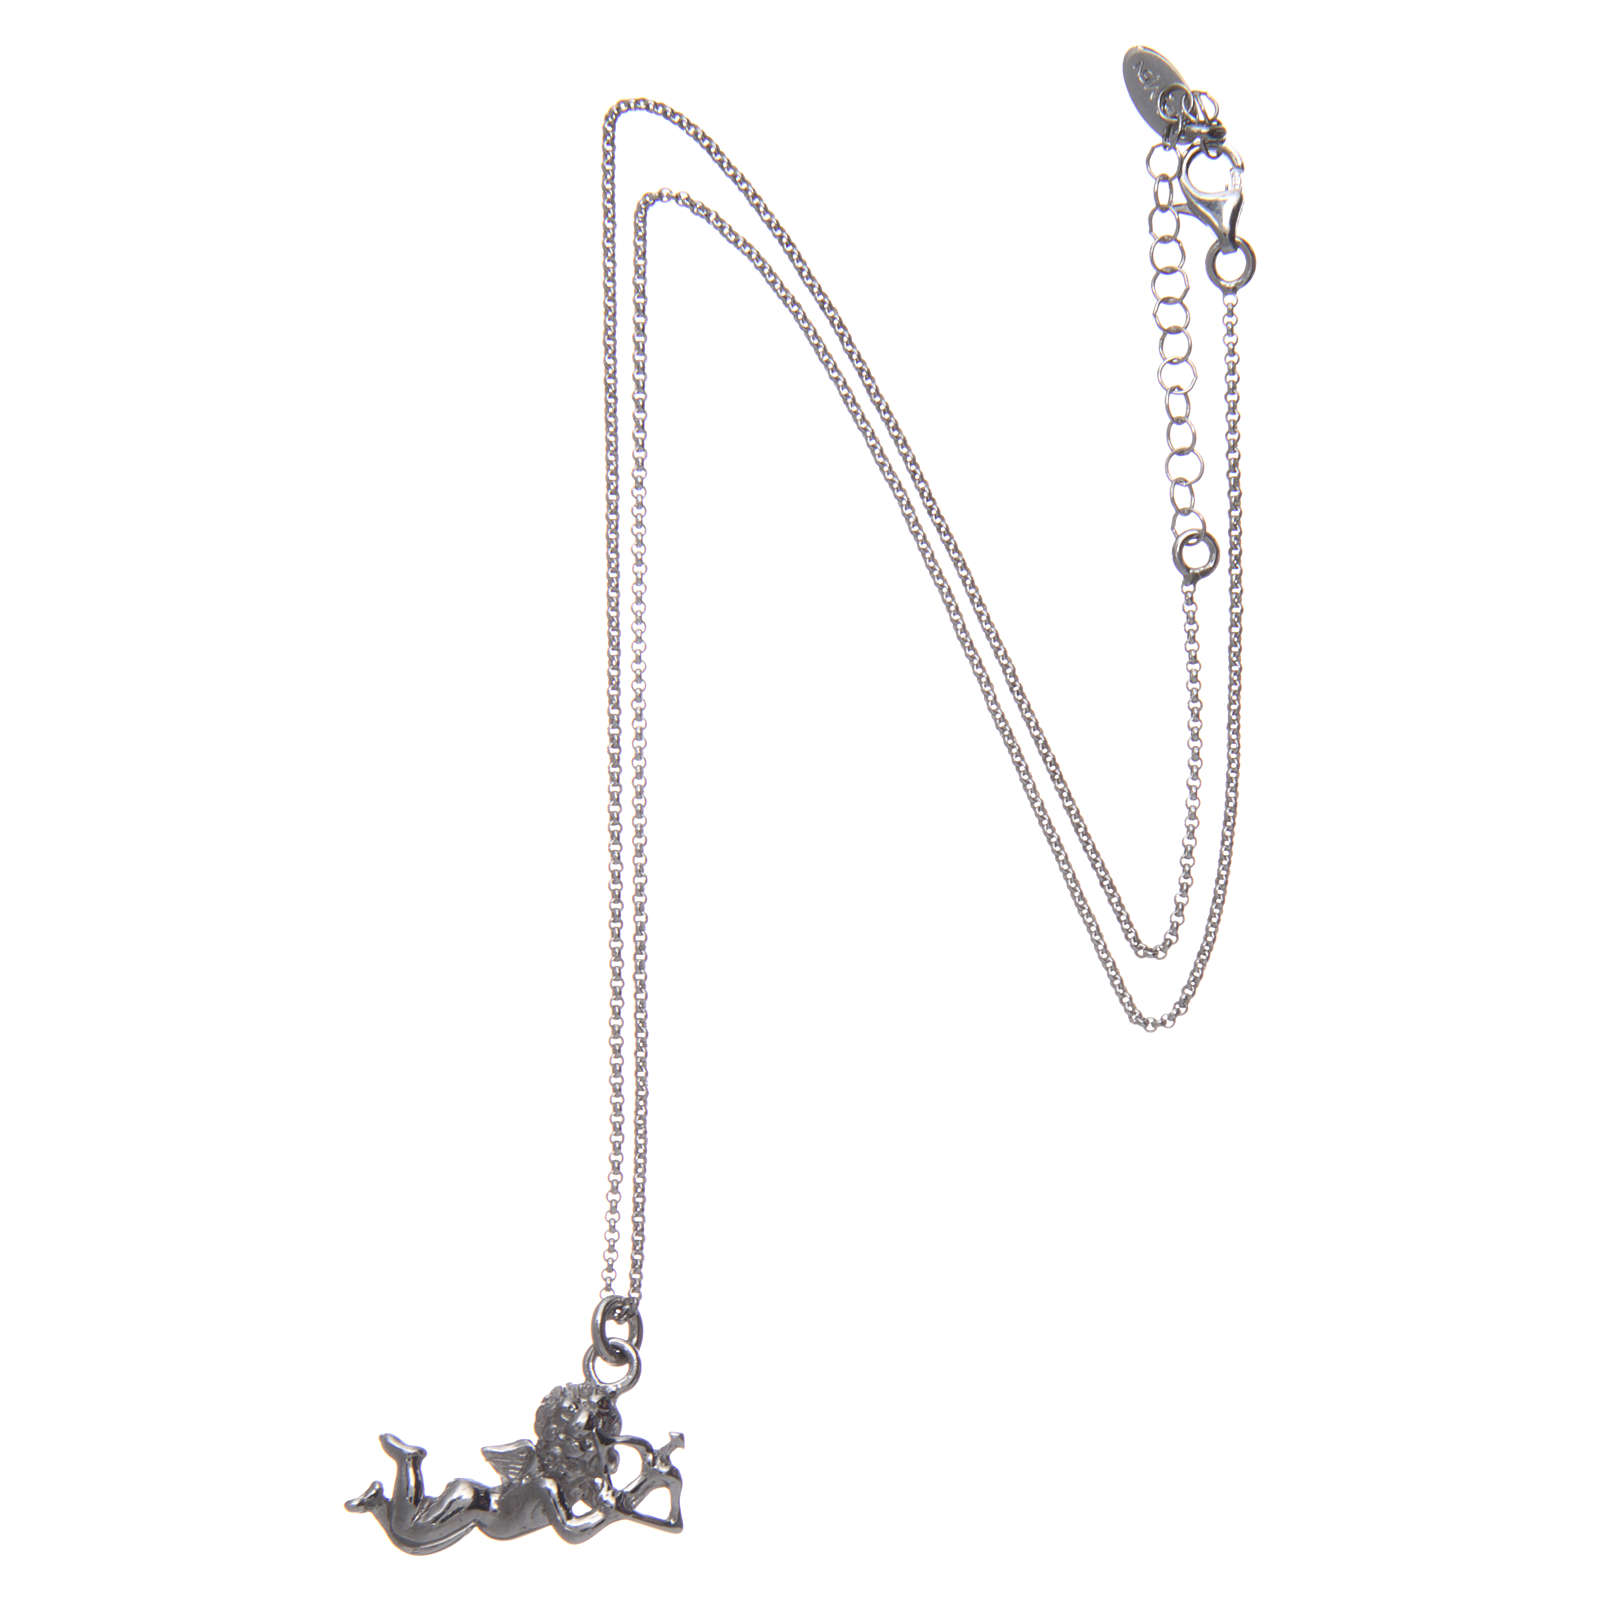 AMEN necklace in 925 sterling silver finished in rhodium with Angel Cupid 4